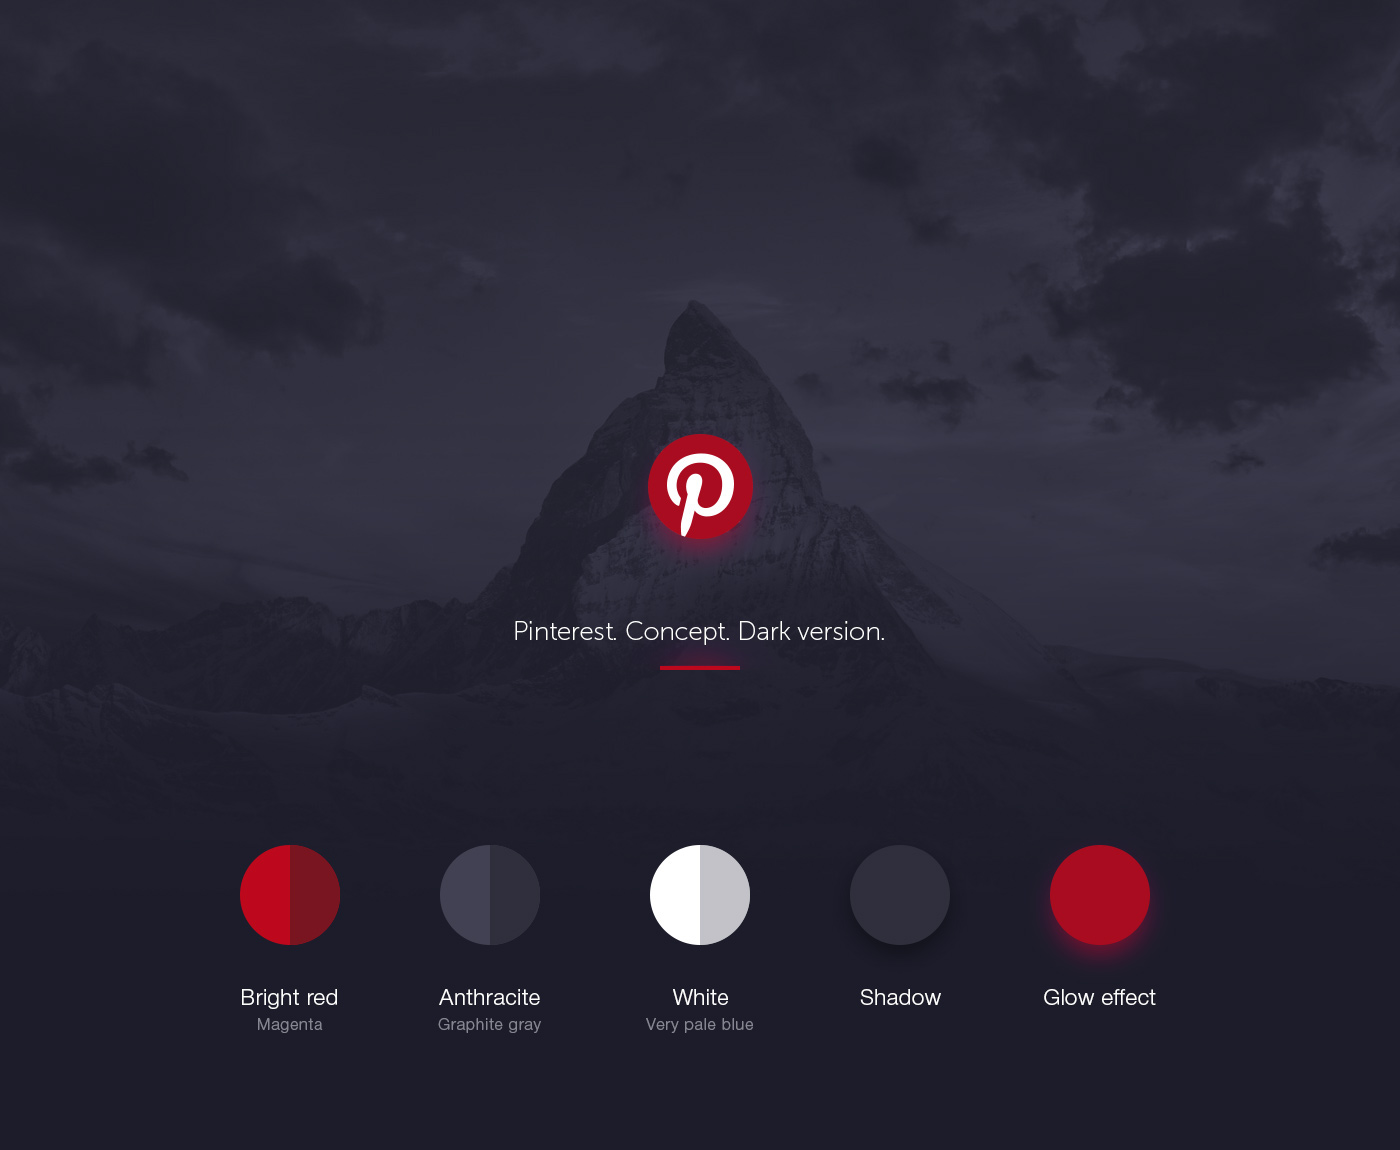 b0708f6e3e1 Pinterest. Concept. Dark version. on Behance